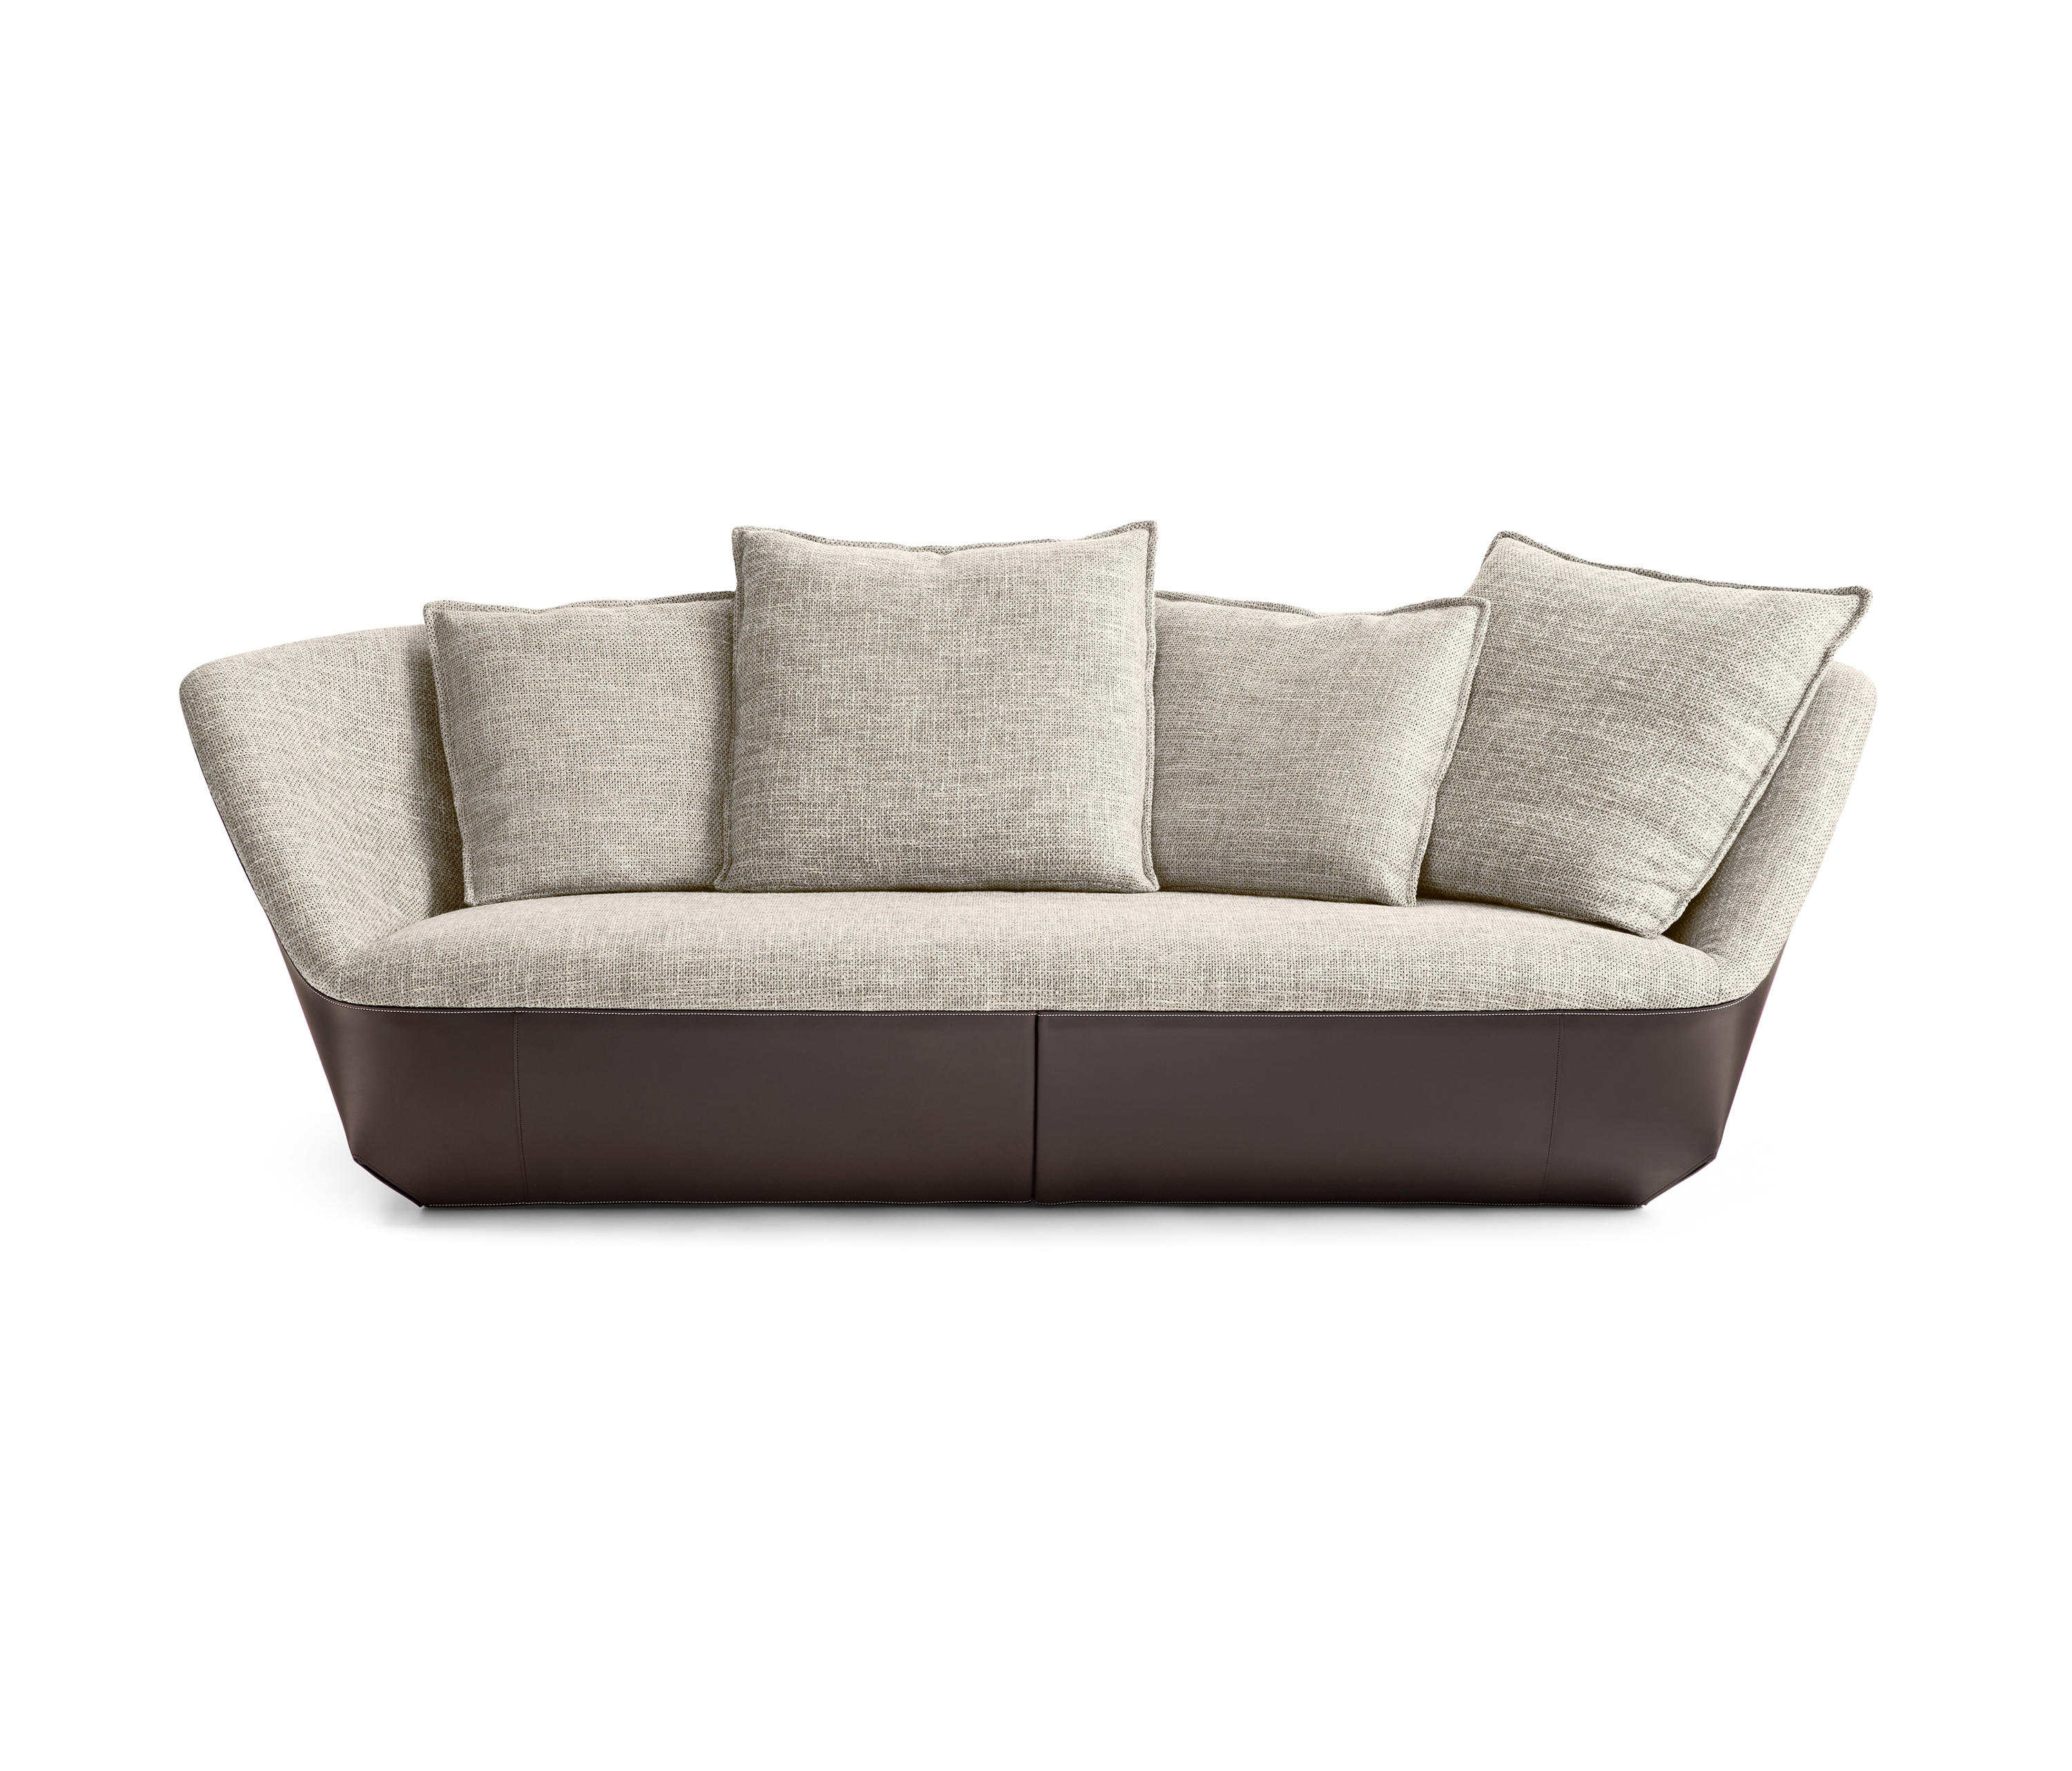 isanka sofa sofas from walter knoll architonic. Black Bedroom Furniture Sets. Home Design Ideas